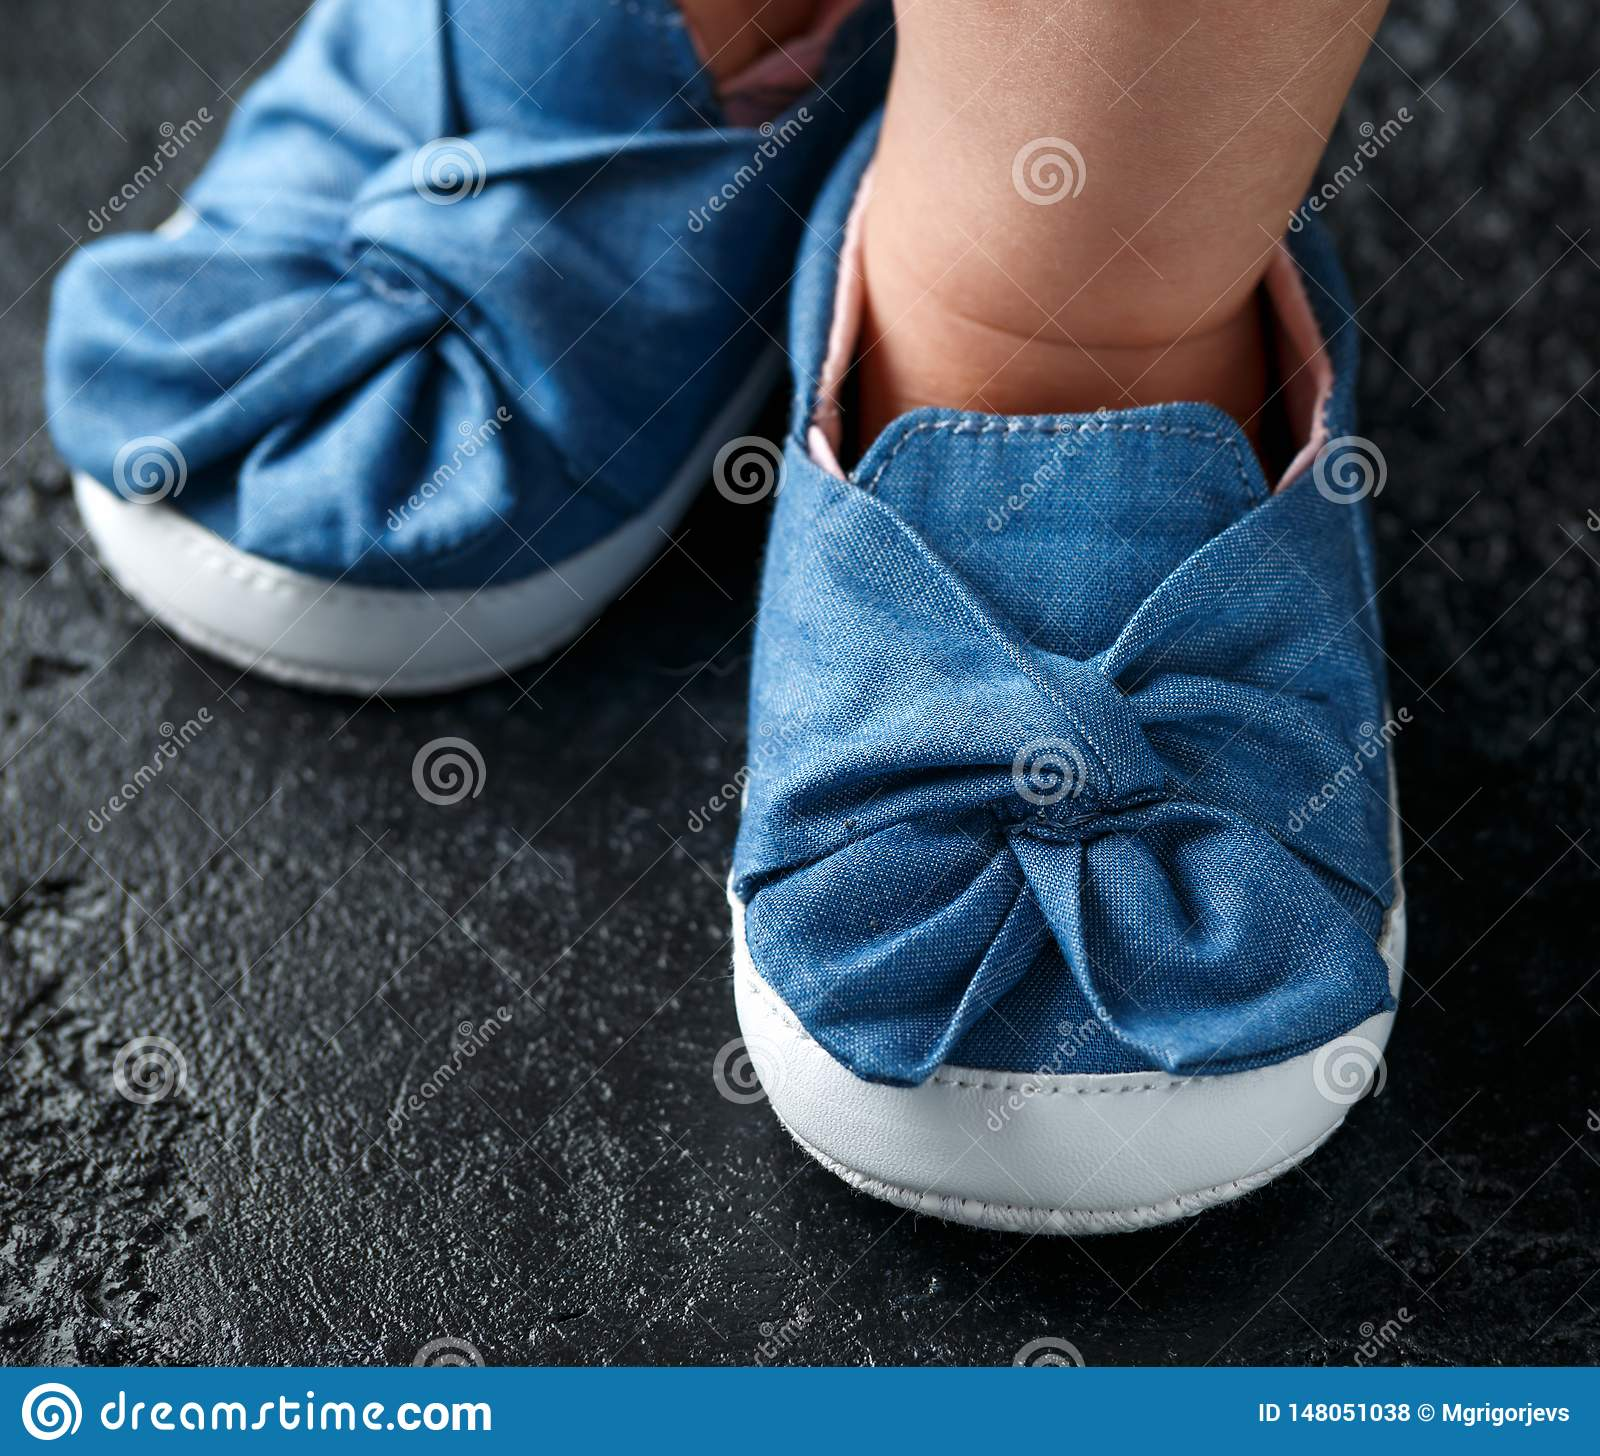 Baby girl first blue denim shoes with bow